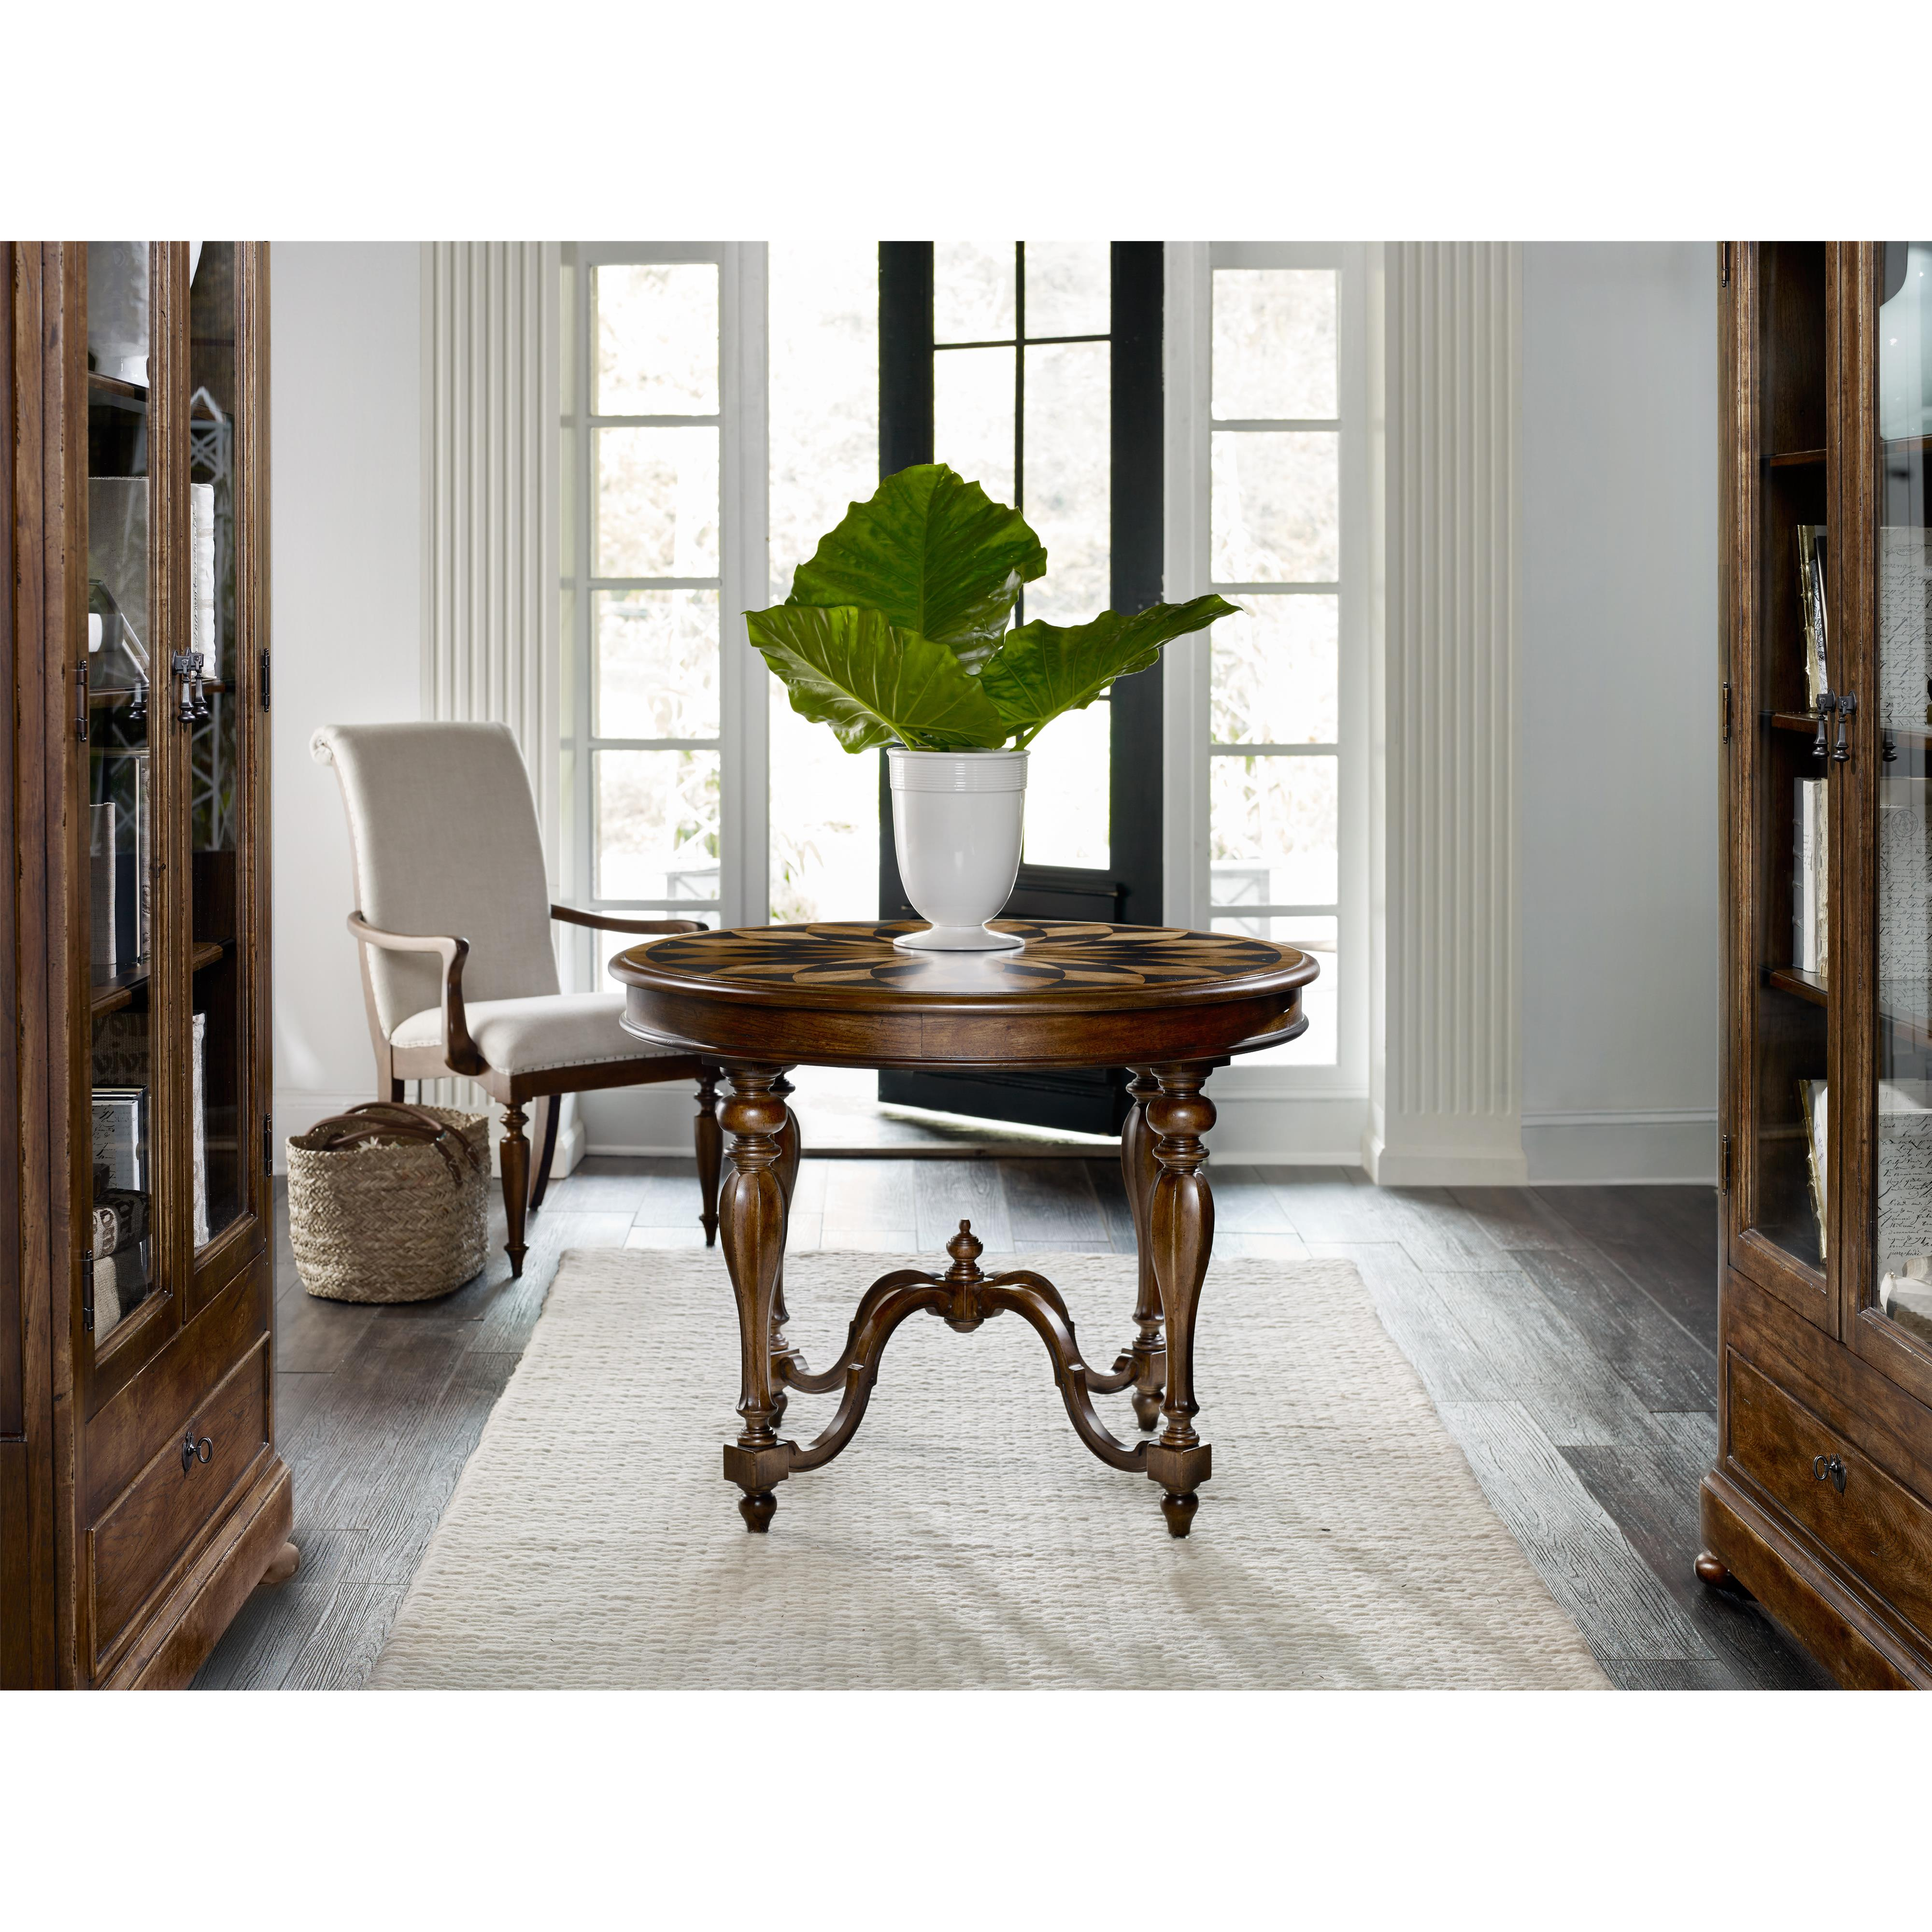 Hooker furniture archivist 5447 85007 center table with for Center table legs